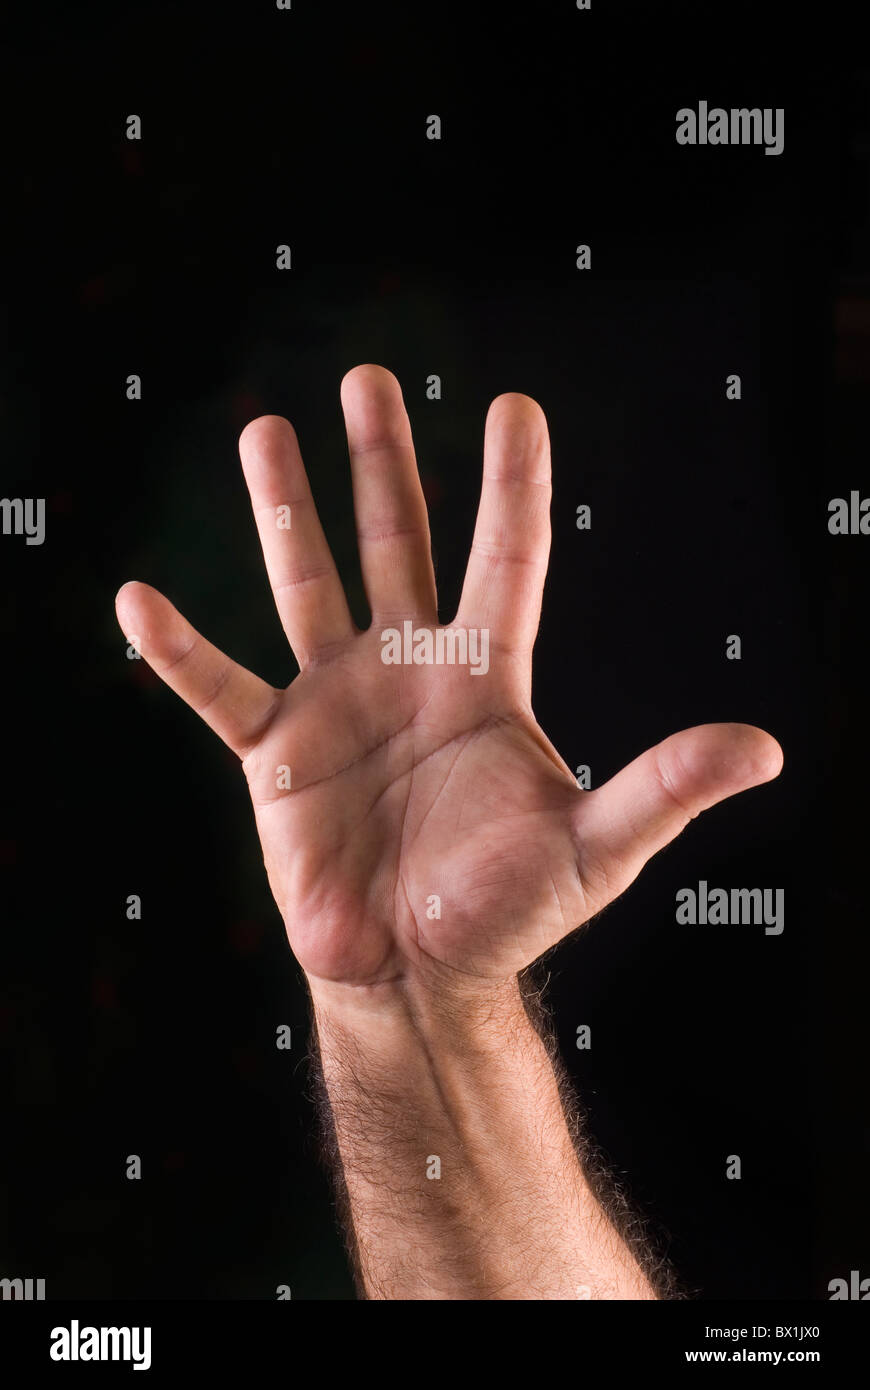 Hand of man showing a stop gesture - Stock Image